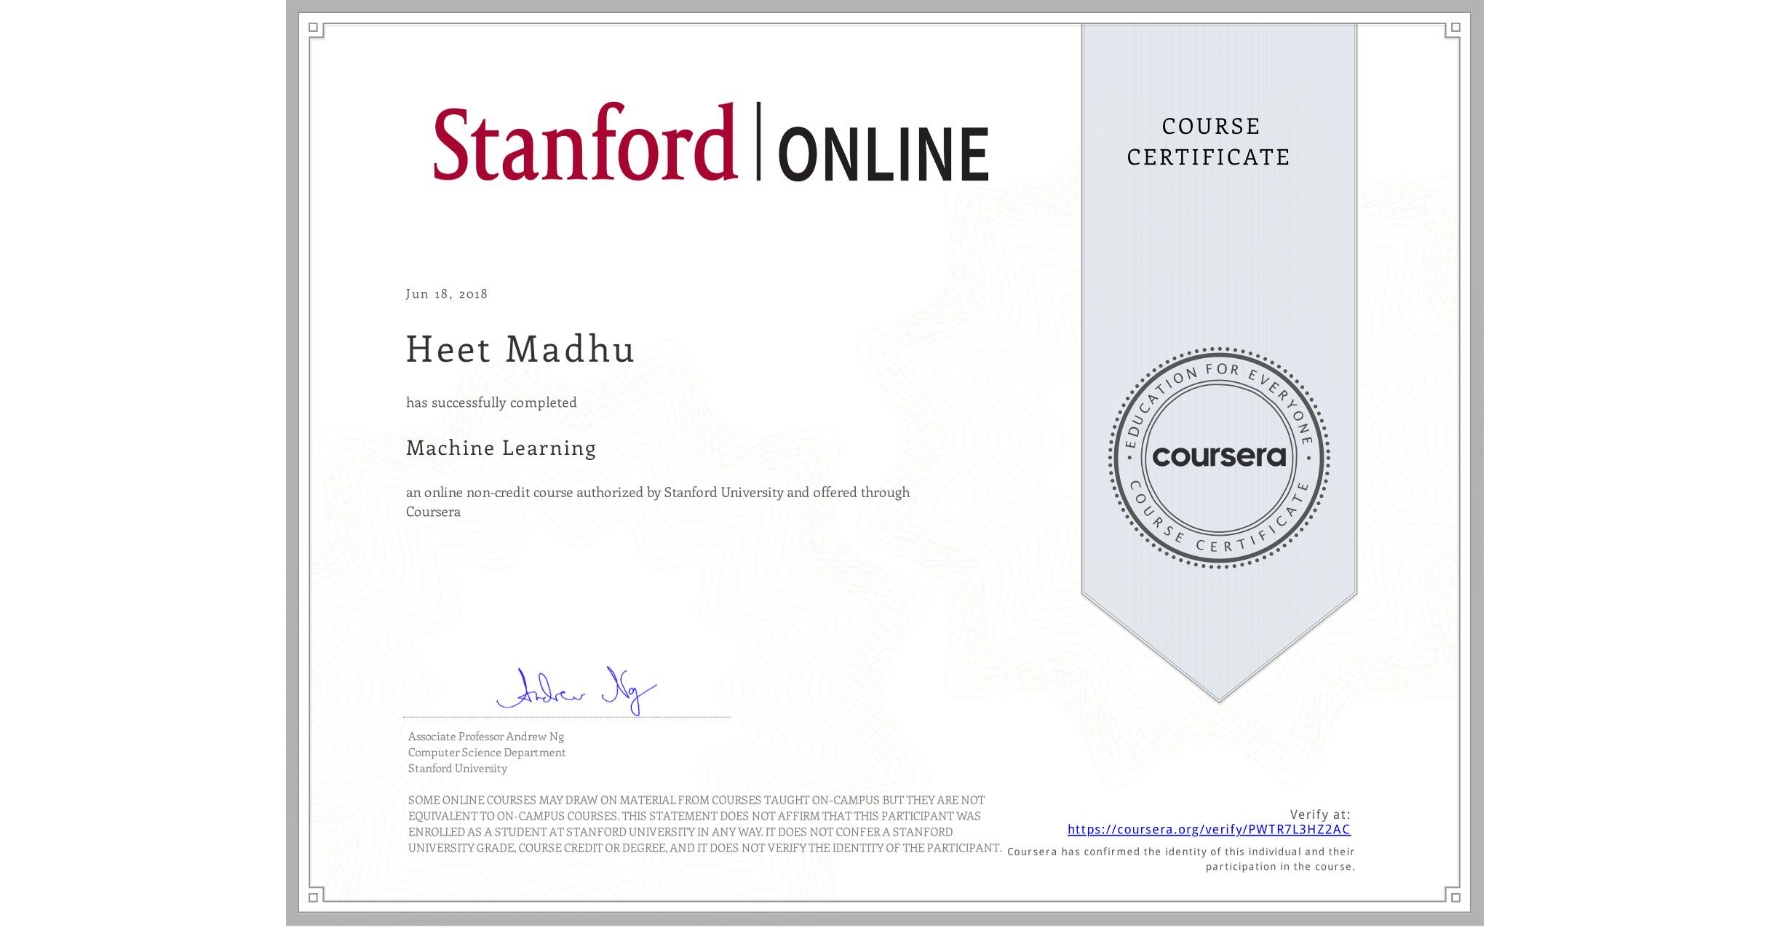 View certificate for Heet Madhu, Machine Learning, an online non-credit course authorized by Stanford University and offered through Coursera